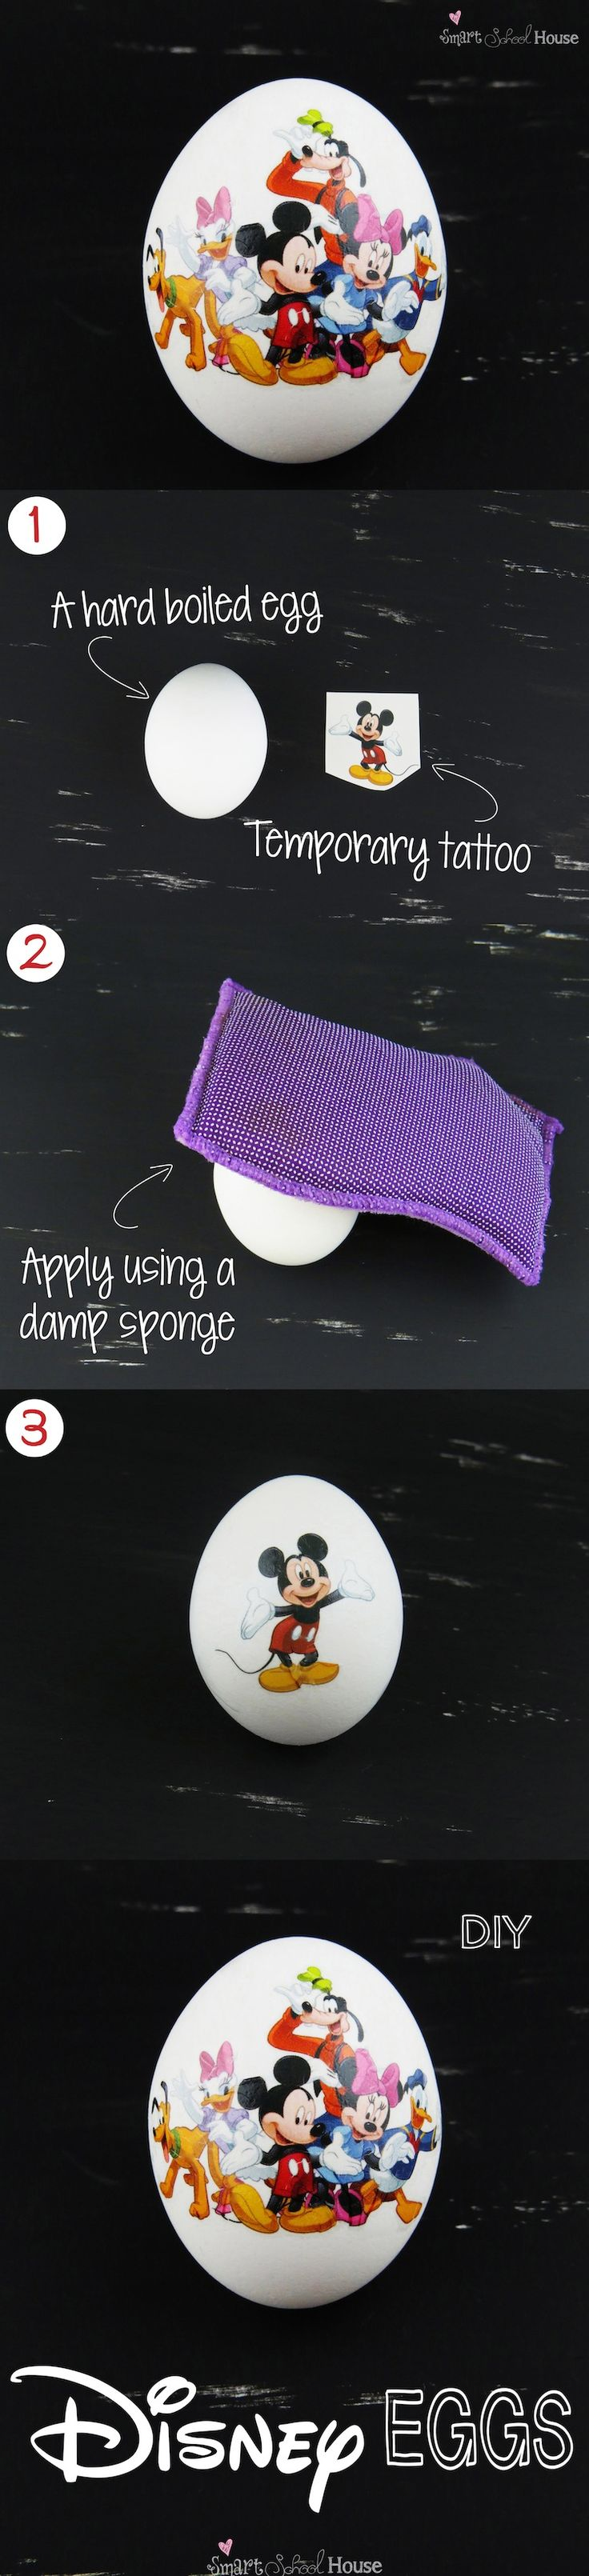 How to make Disney Eggs for Easter! This craft is SO EASY! #Disney